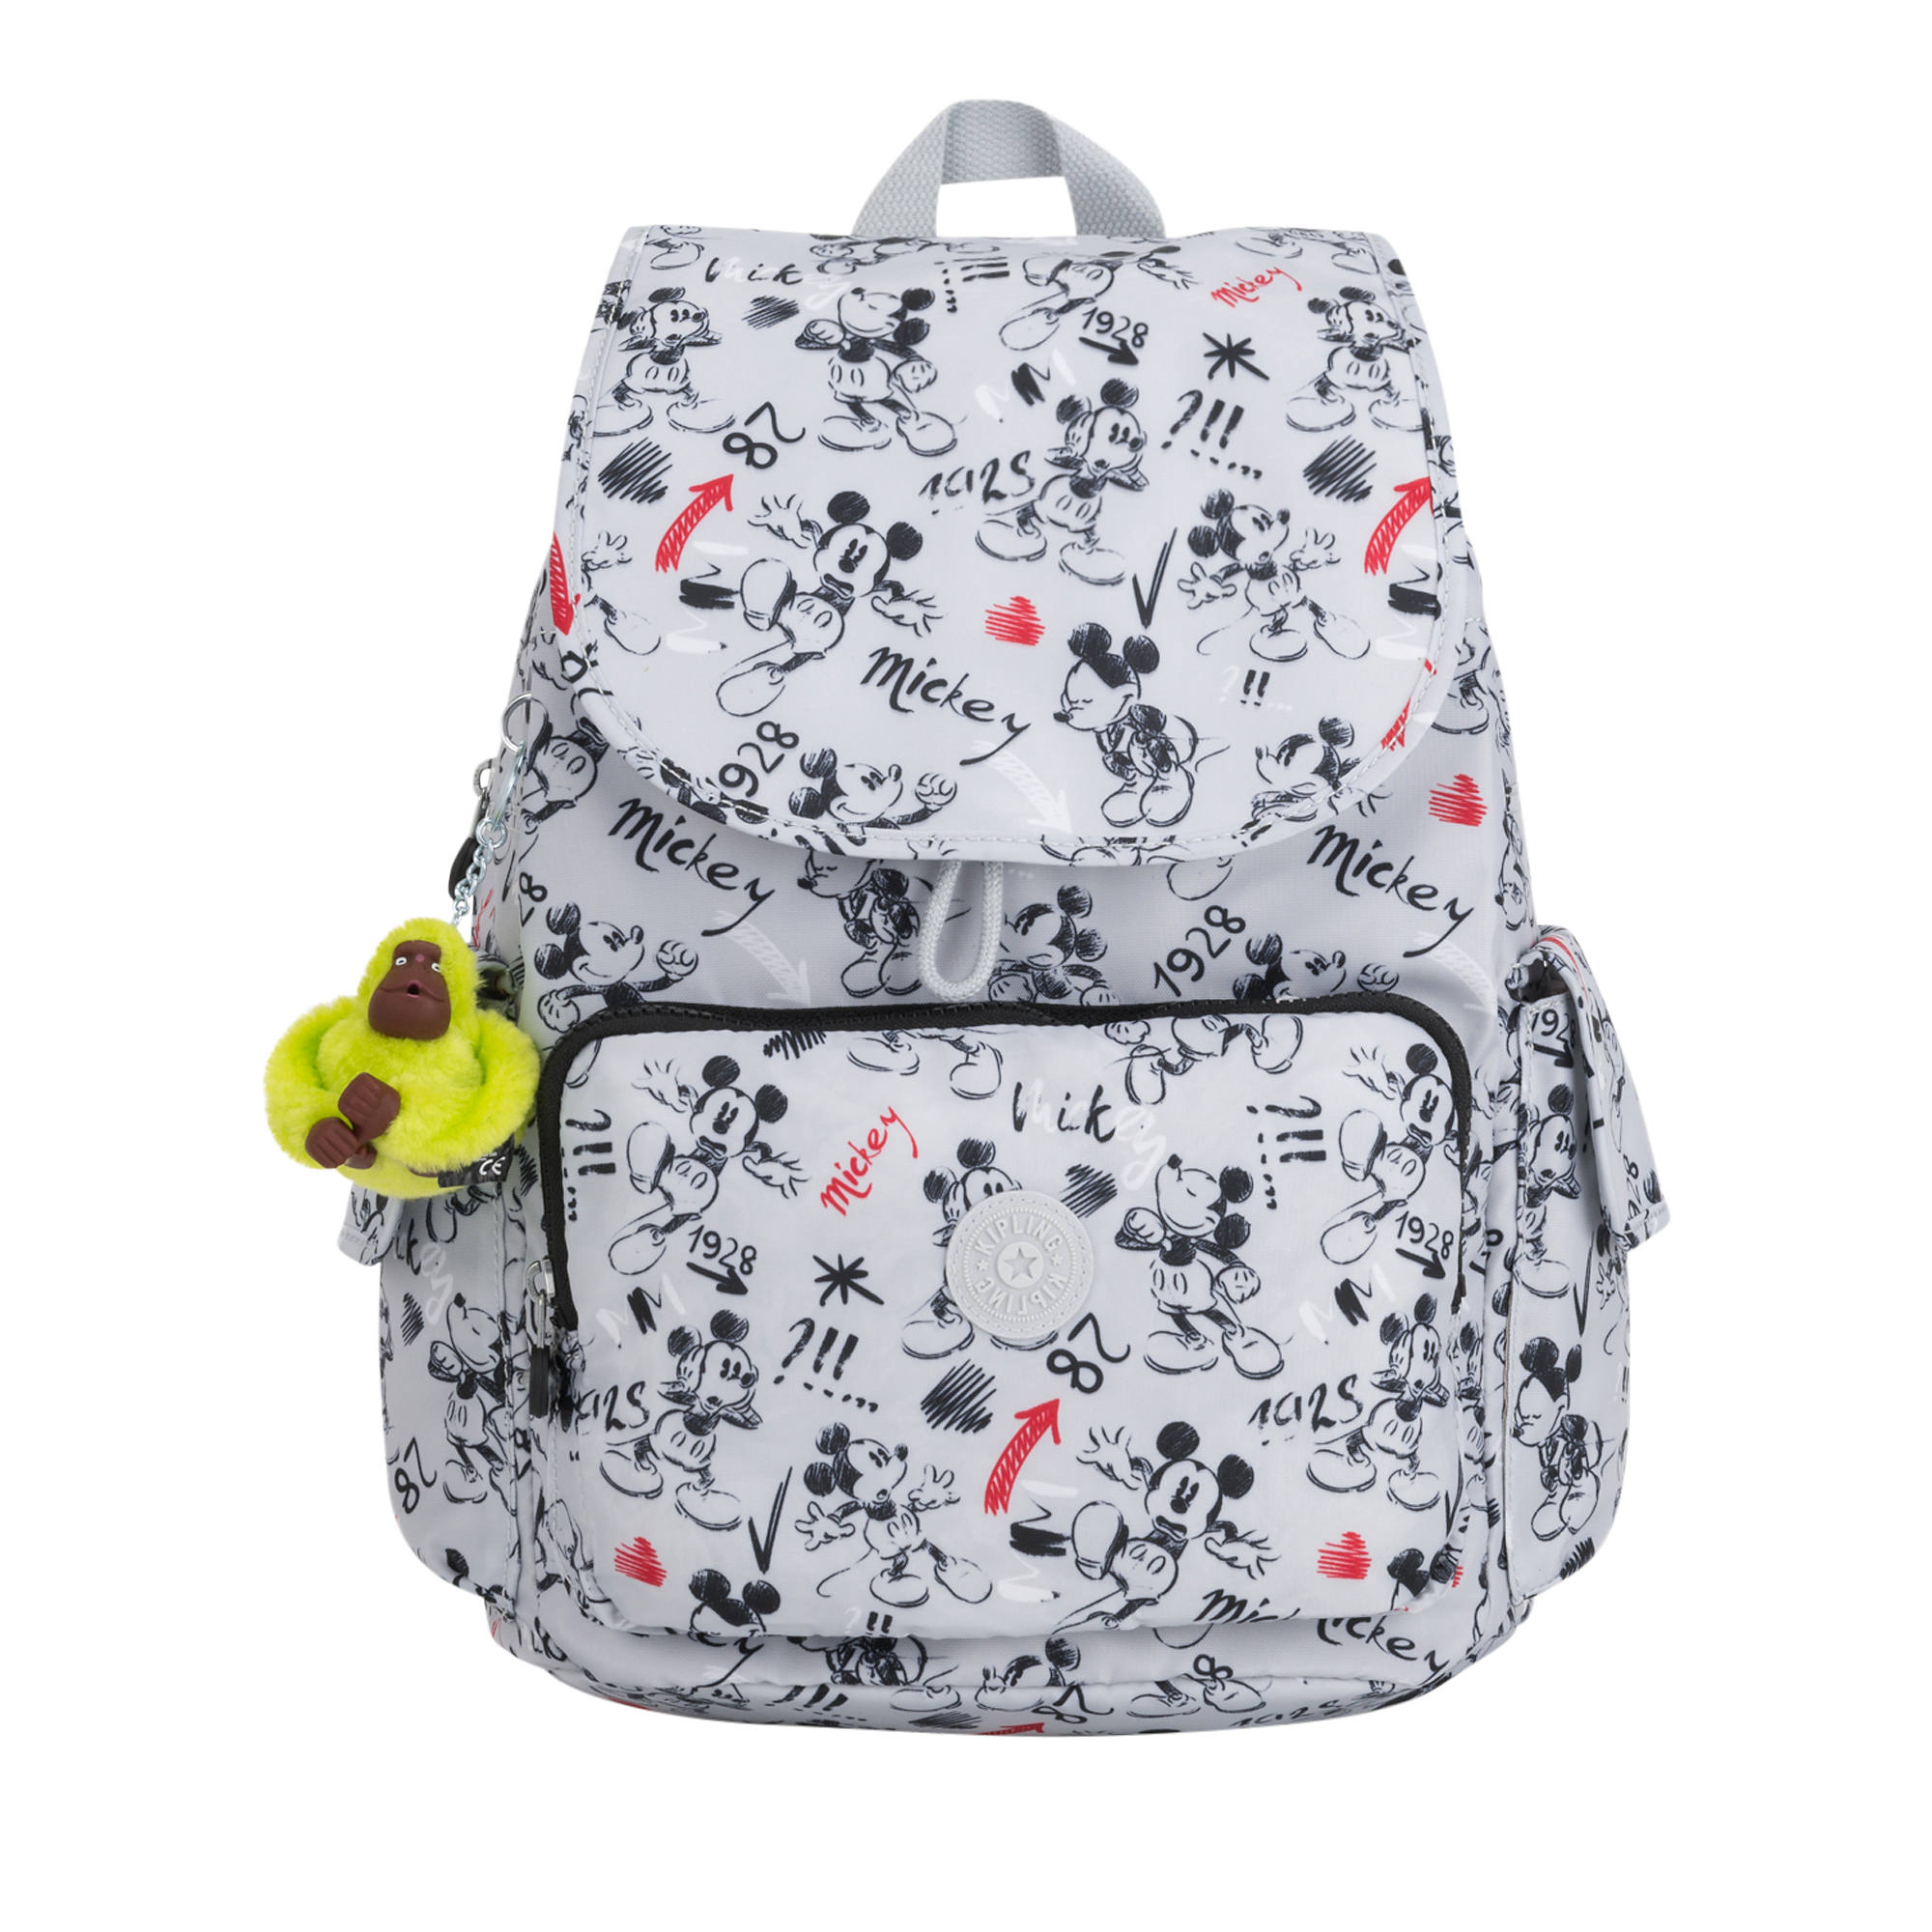 32684a02e4 Disney s 90 Years of Mickey Mouse Citypack Backpack